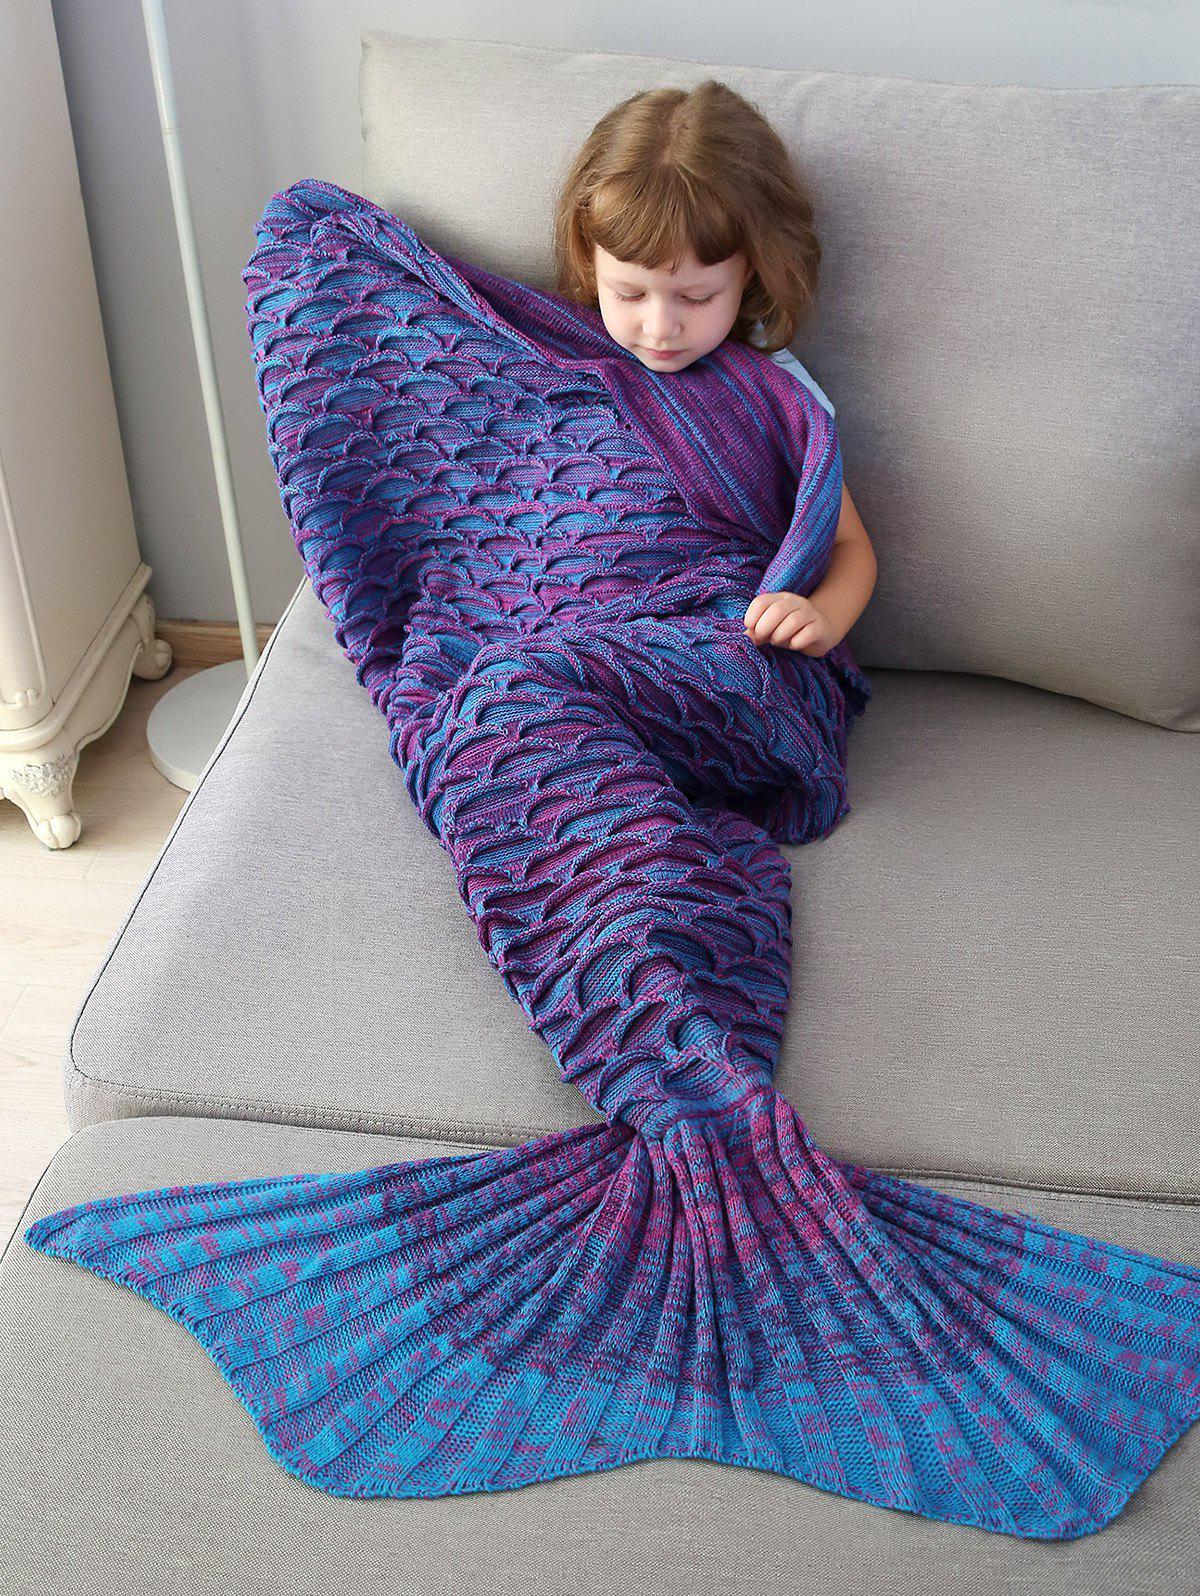 New Home Decor Mix Color Fish Scale Knit Mermaid Blanket Throw For Kids